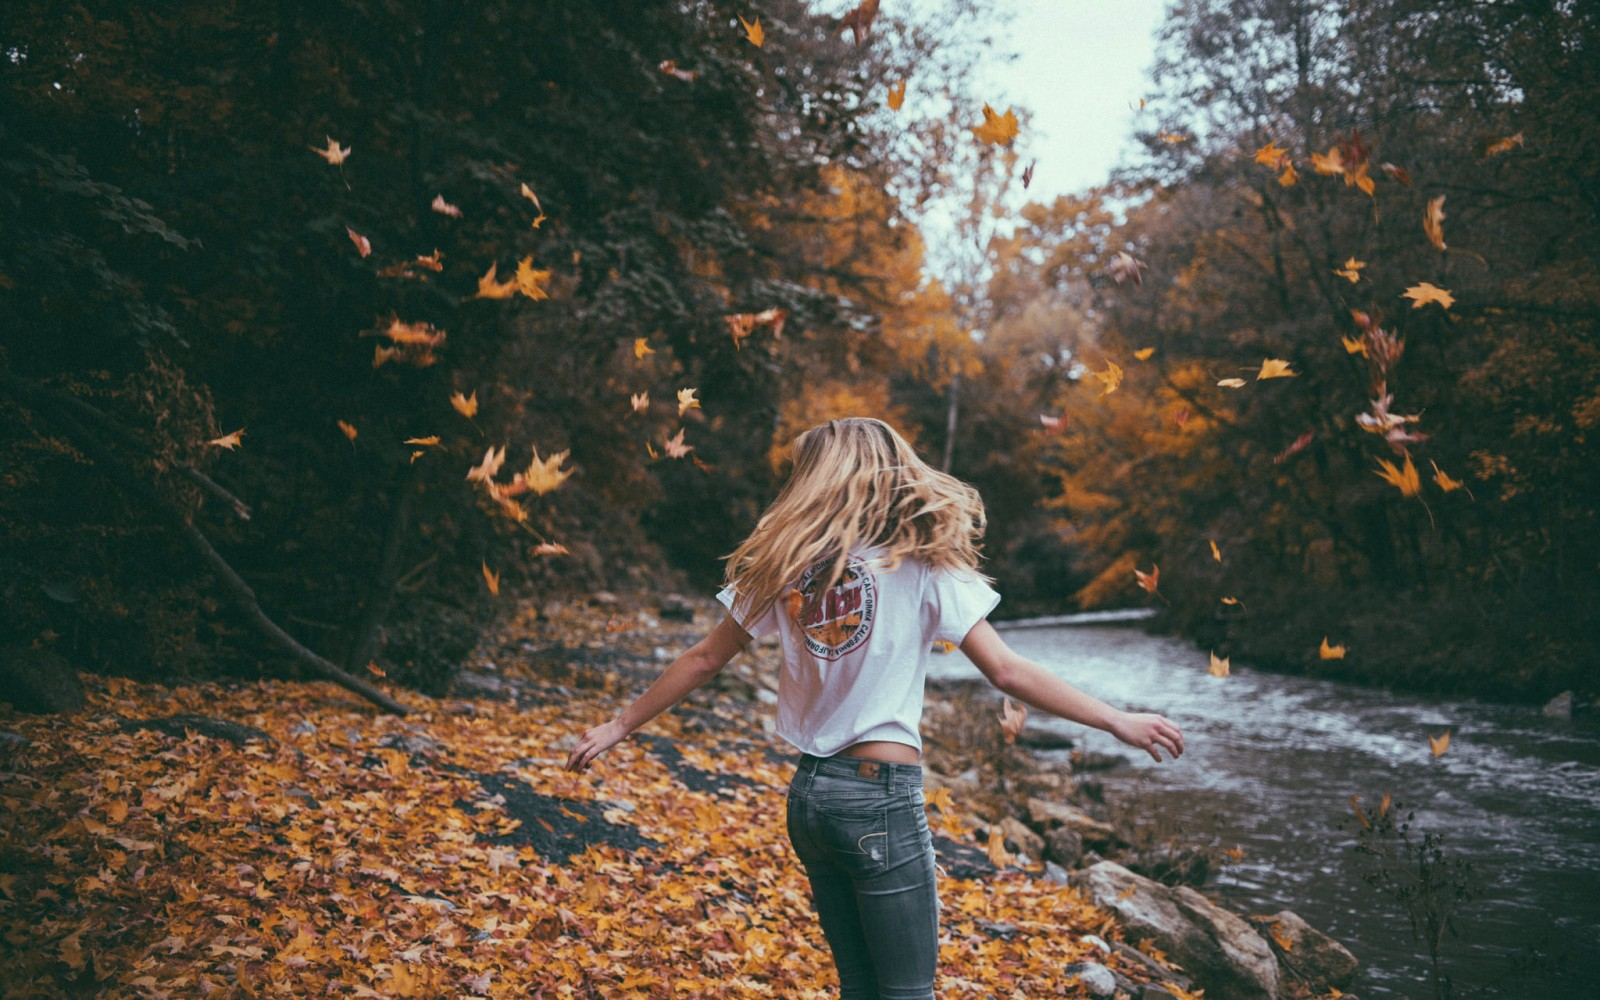 10 Quotes That Perfectly Describe Our Unapologetically Basic Obsession With Fall